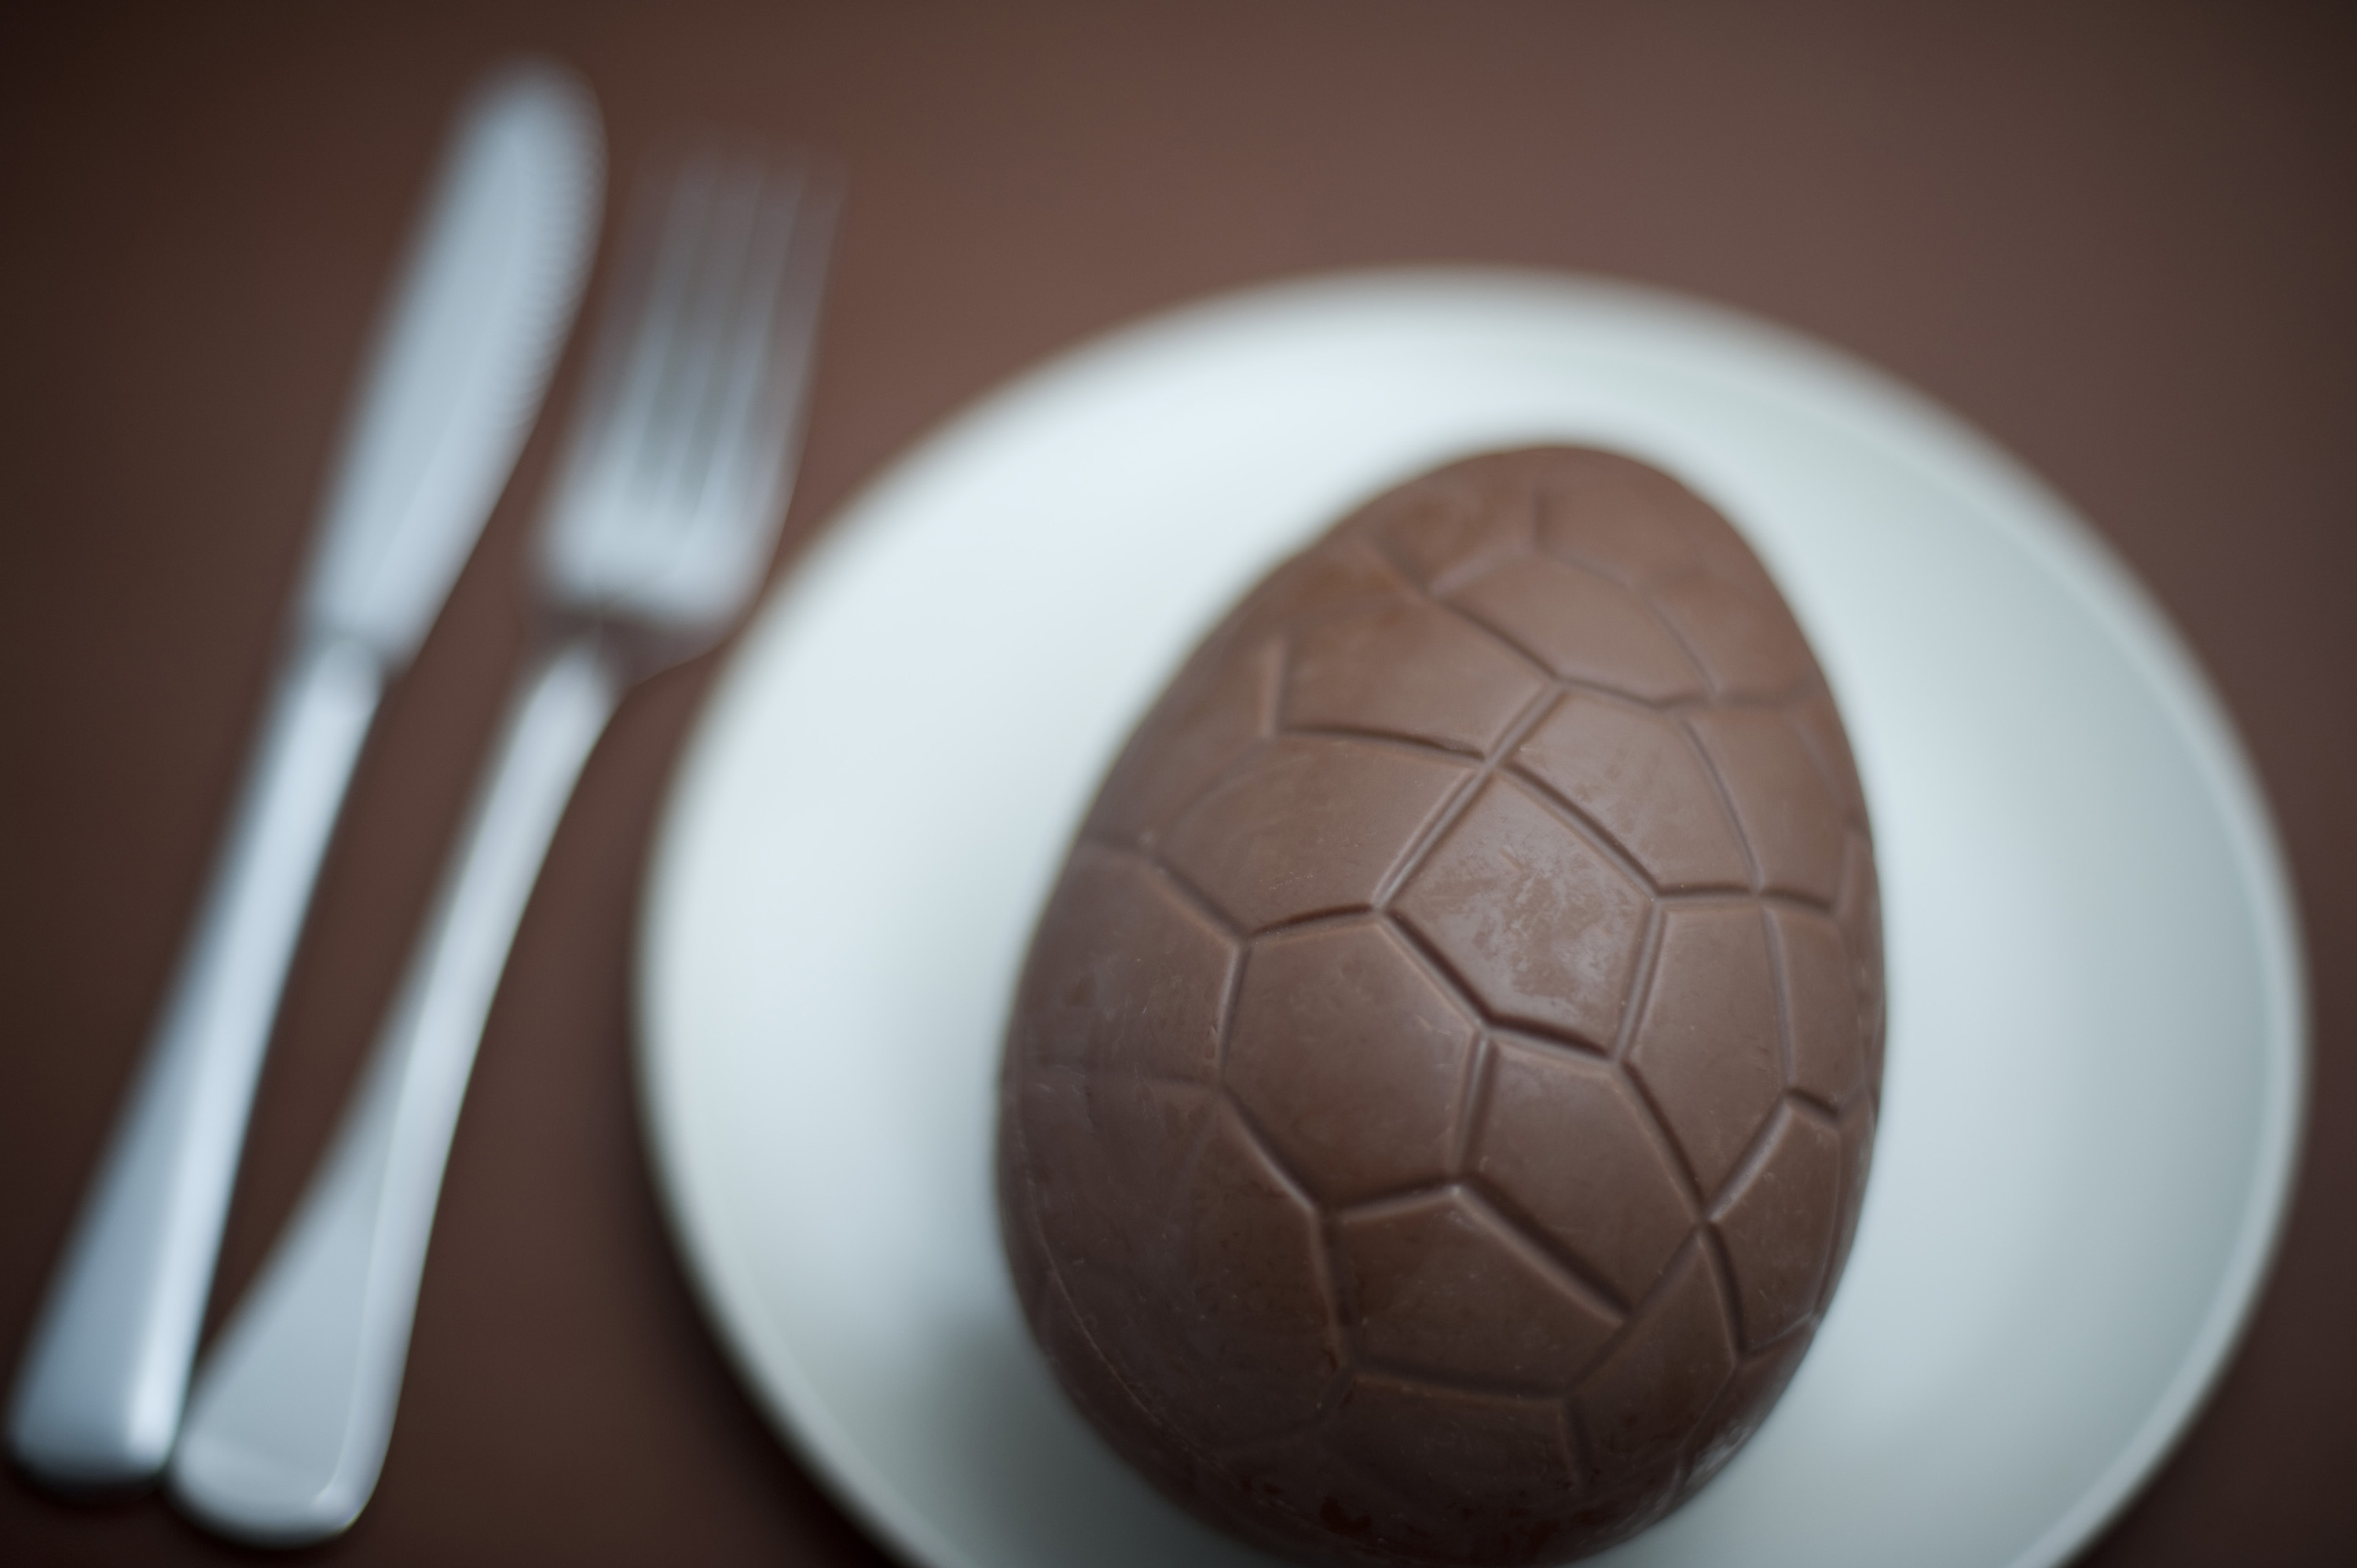 concept_chocolate_egg.jpg - Overhead close up view of one chocolate egg in small white bowl with fork and knife nearby